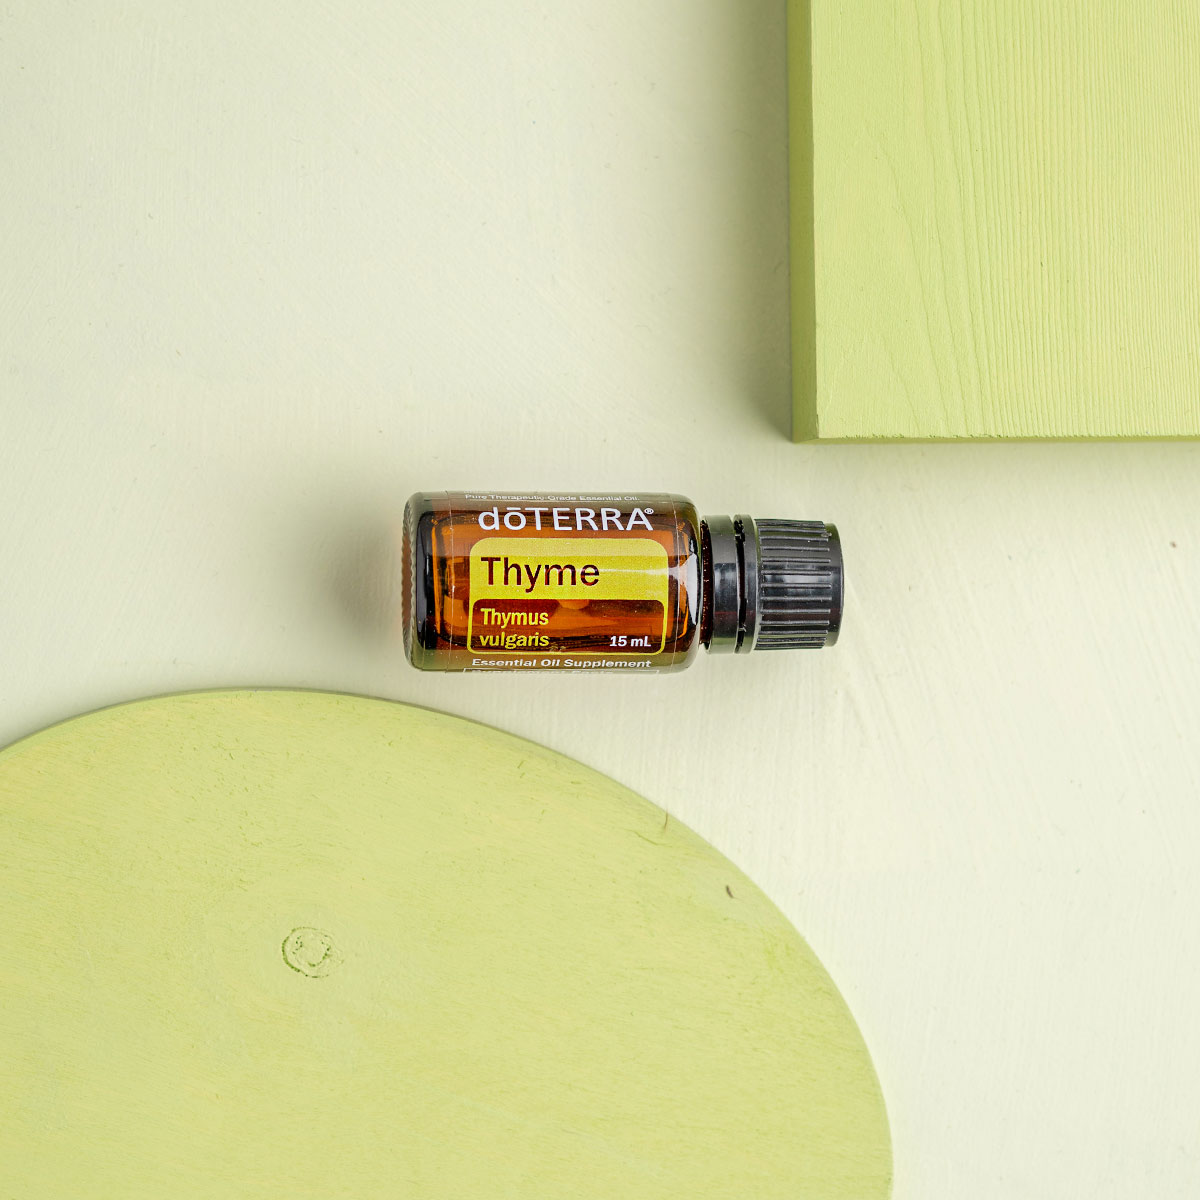 Bottle of Thyme oil next to green wood circle and green wood square. What are the benefits of Thyme essential oil? Thyme essential oil has benefits for the immune system, plus it provides antioxidants and can help to repel insects.